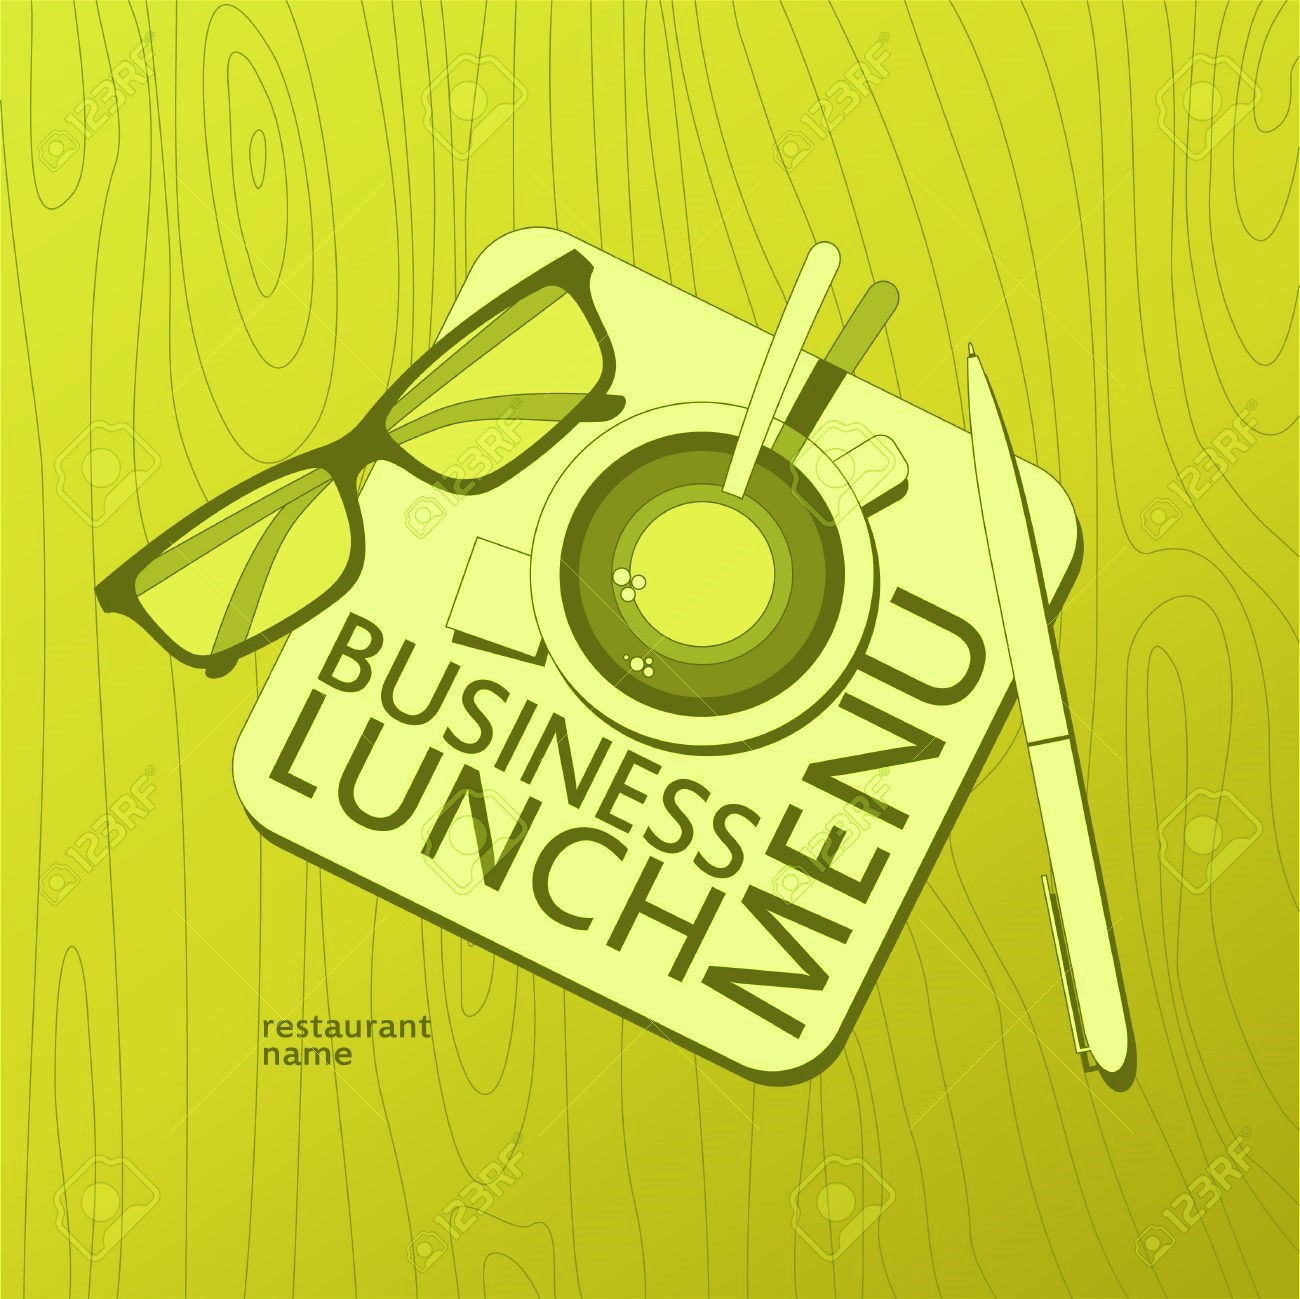 11261921-Business-Lunch-Menu-Card-Design-template--Stock-Photo (2)